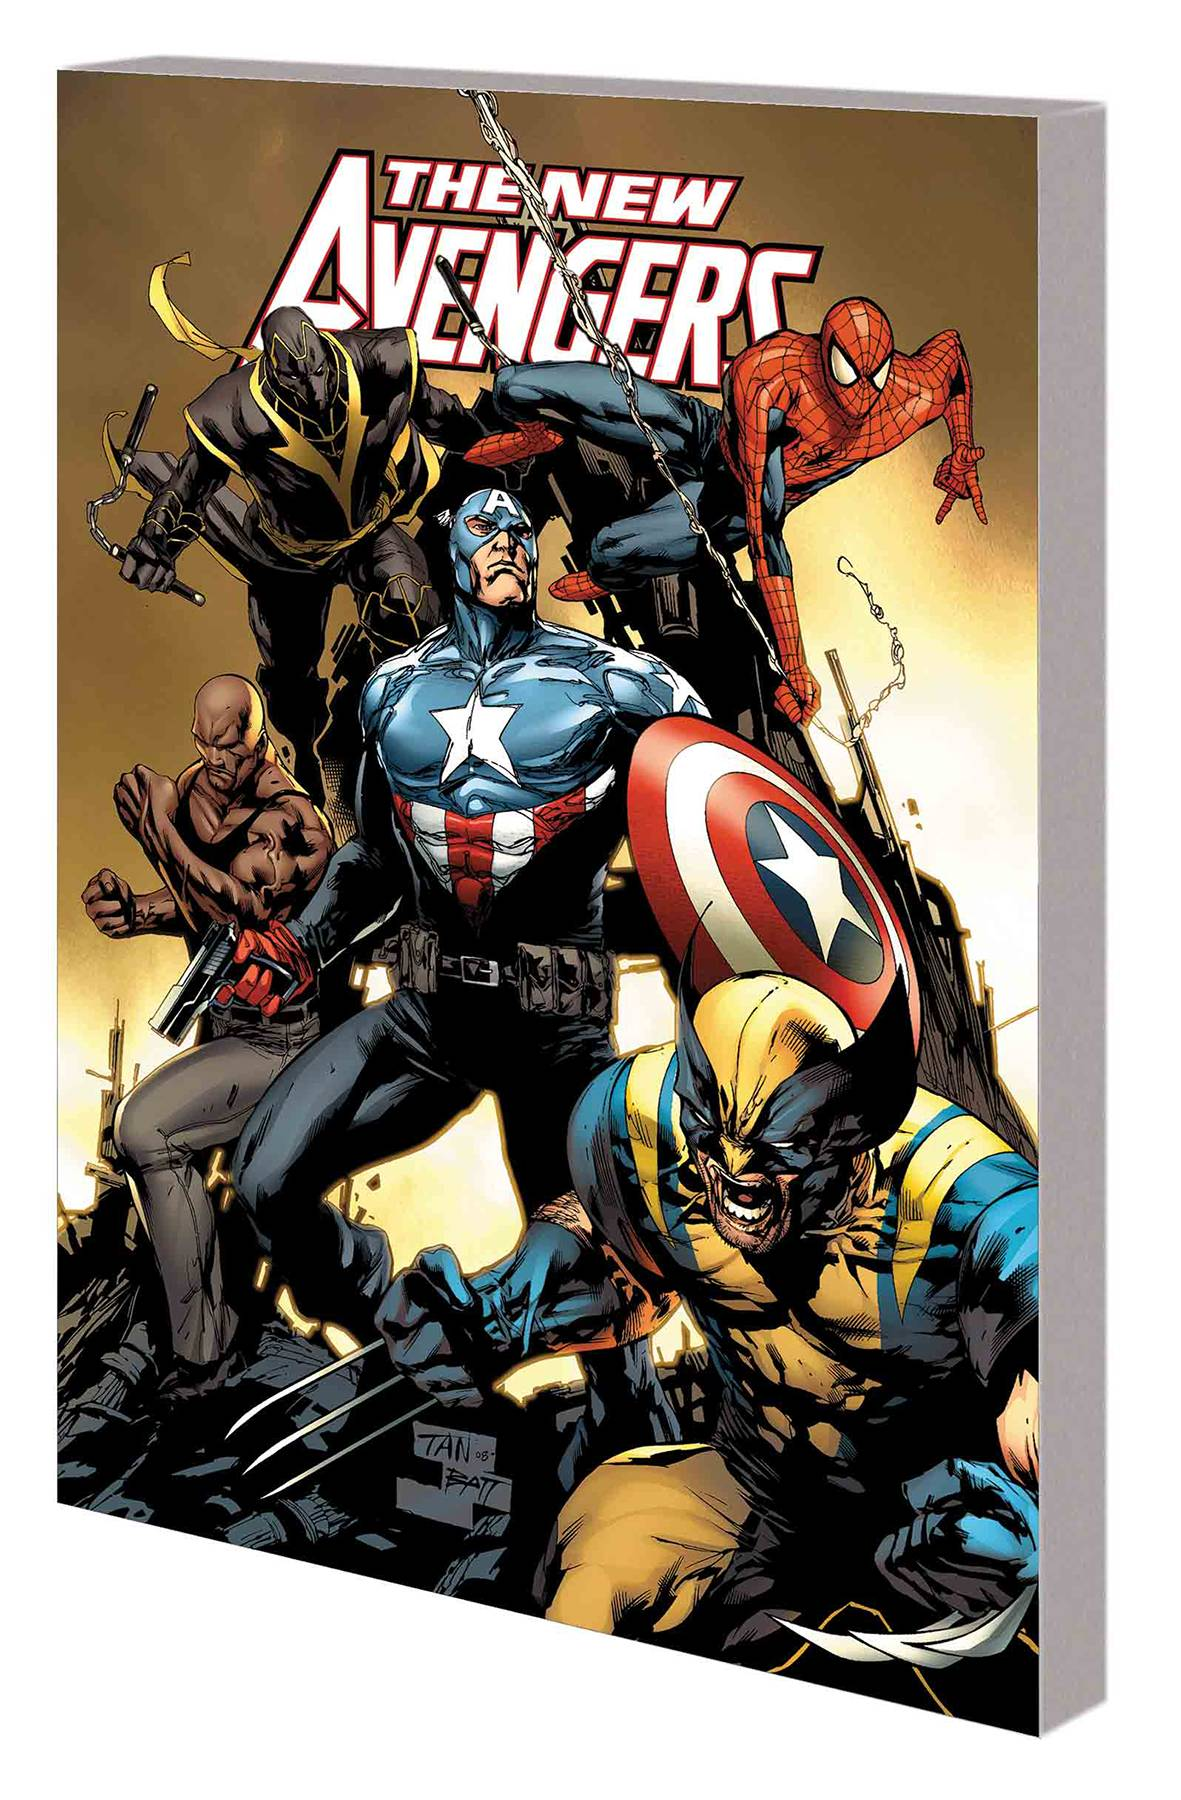 NEW AVENGERS BY BRIAN MICHAEL BENDIS: THE COMPLETE COLLECTION VOL 04